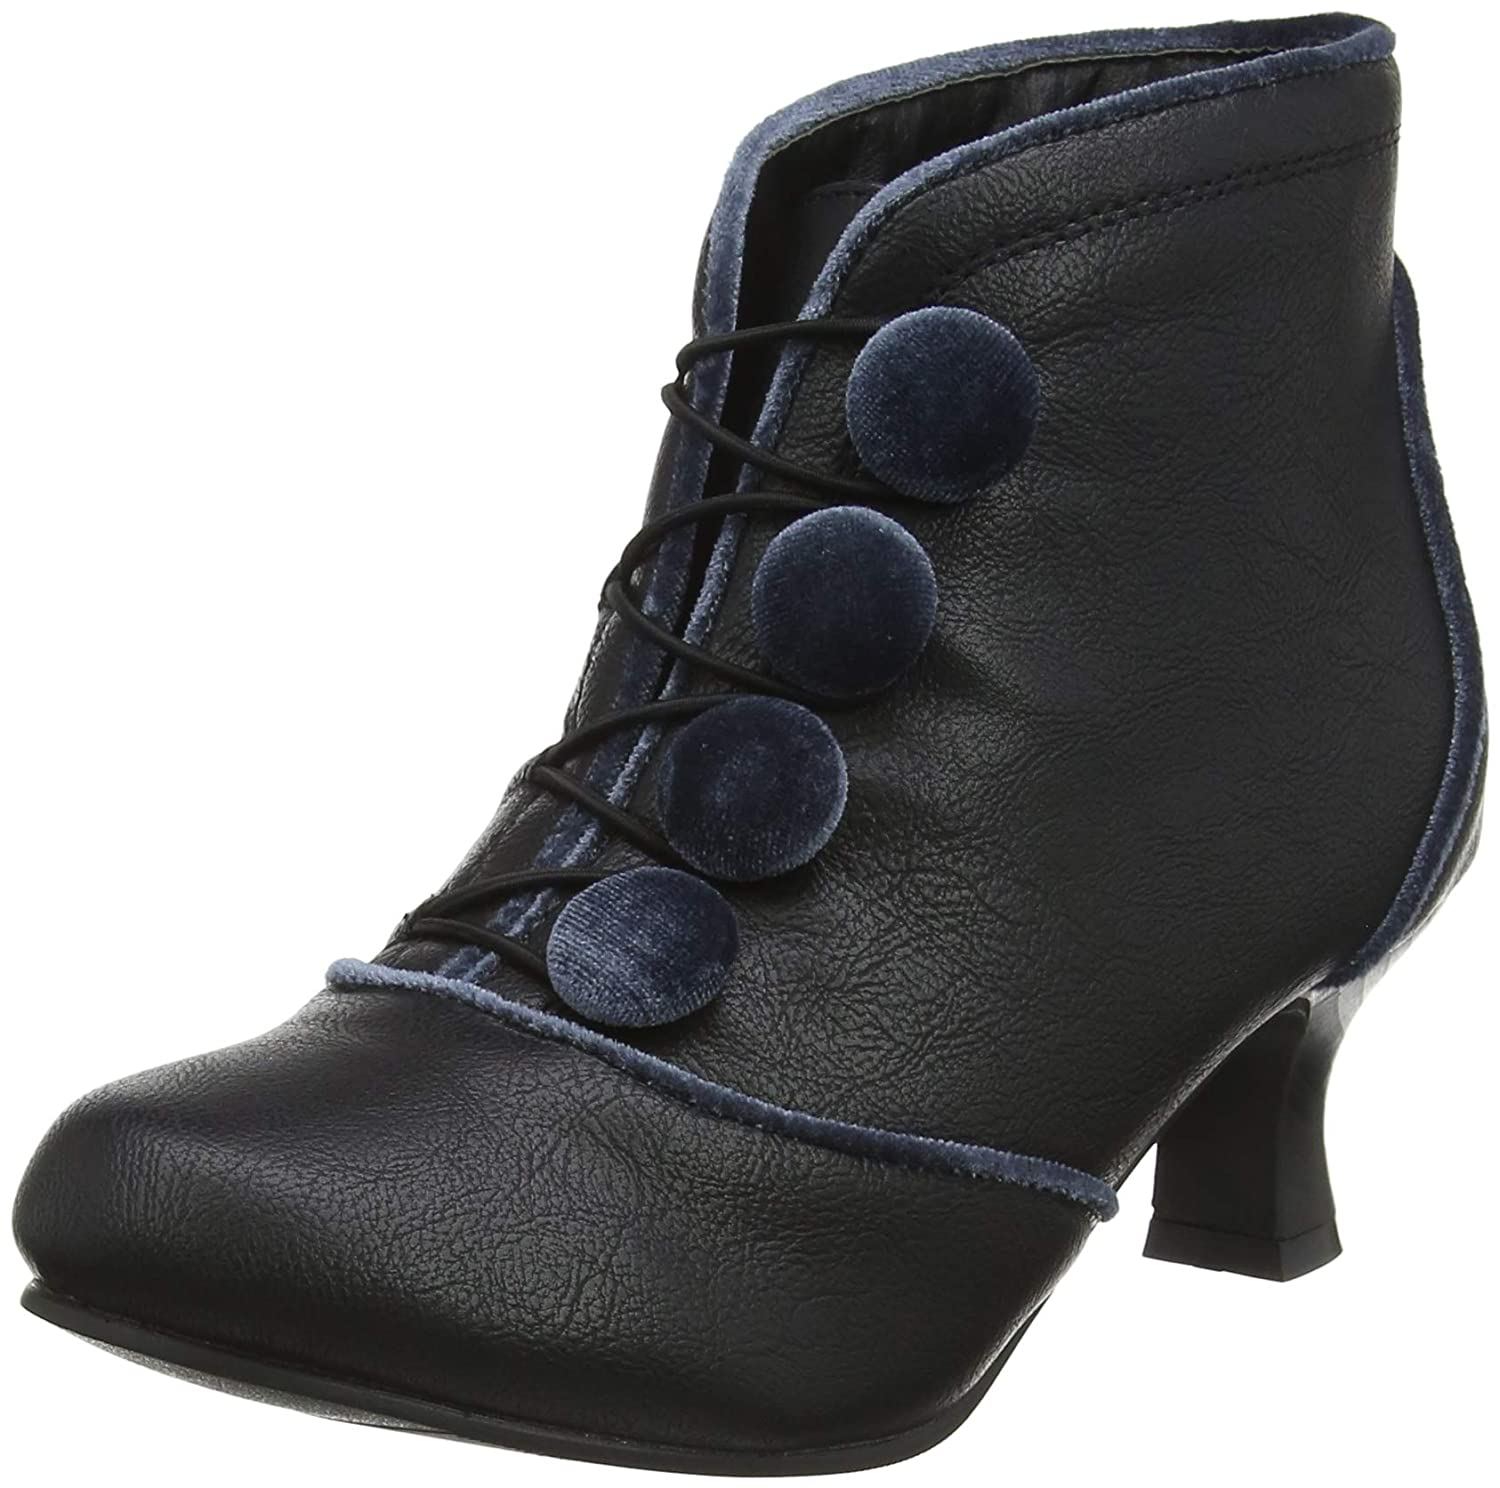 Joe Browns Bewitching Unique Joe Bootees, Bottines Femme Black Bottines (Black (Black A) e424eab - latesttechnology.space